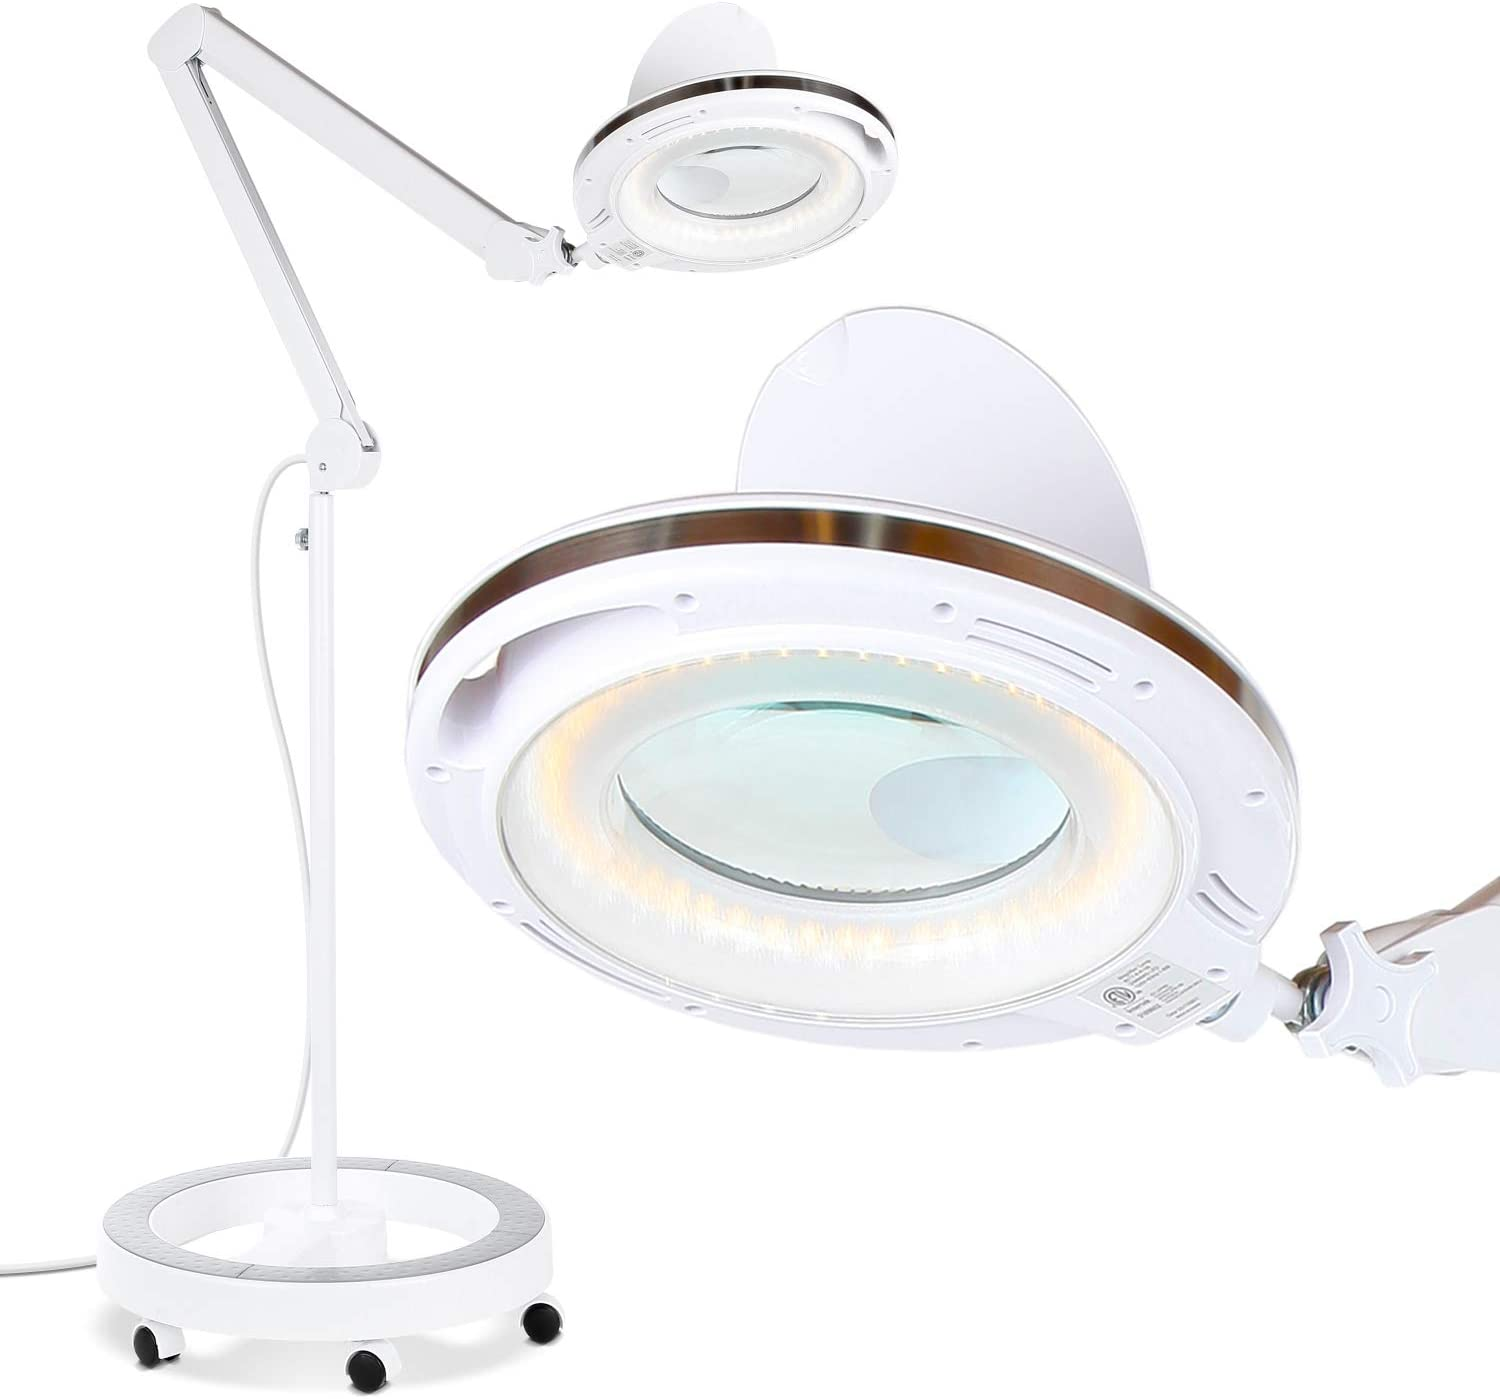 Brightech LightView Pro 6 Wheel Rolling Base Magnifying Floor Lamp